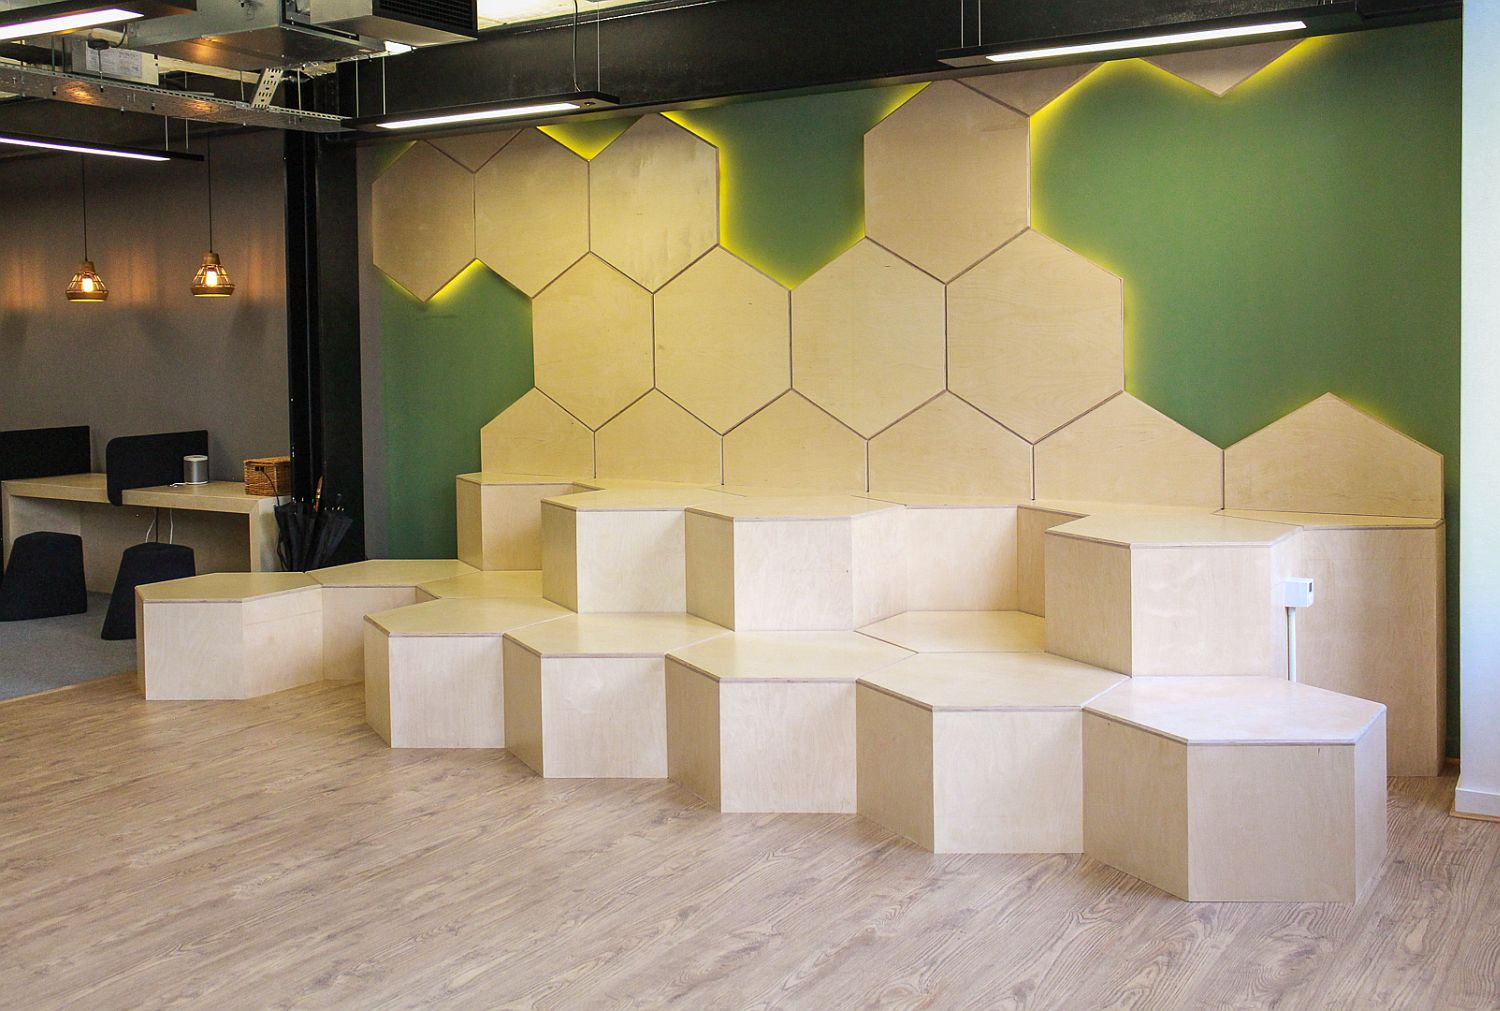 Informal hexagonal seating becomes a fun addition in the office